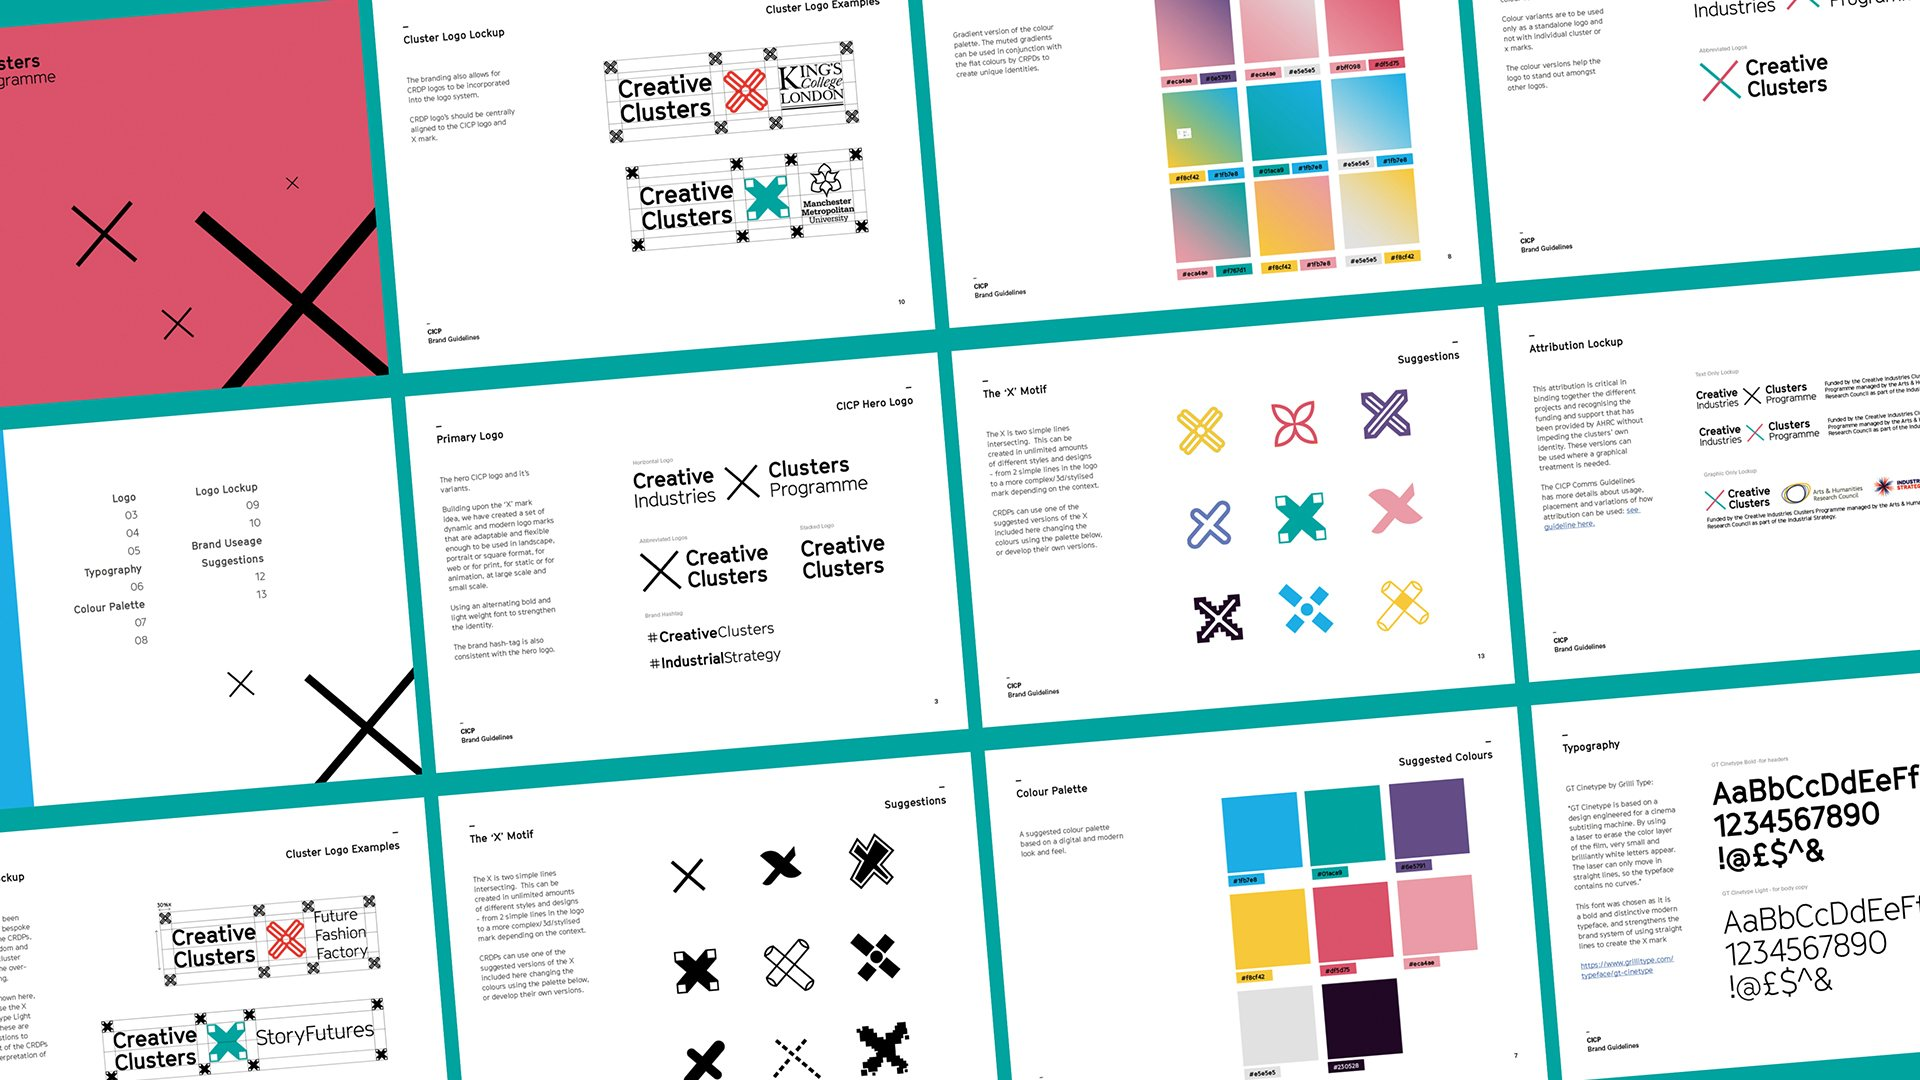 CICP brand guidelines summary and branding